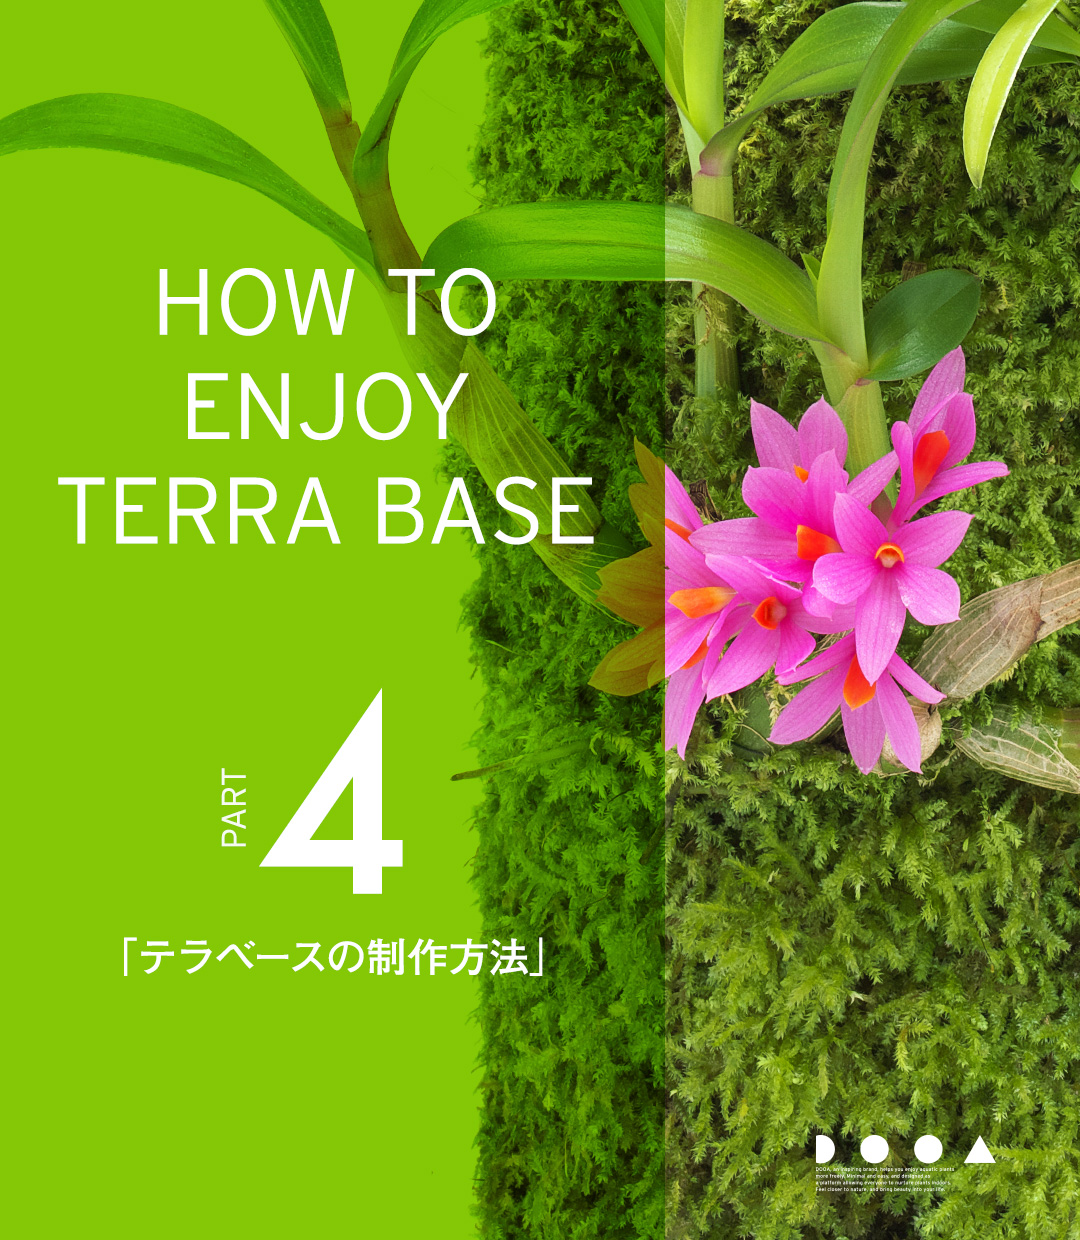 HOW TO ENJOY TERRA BASE PART4「テラベースの制作方法」